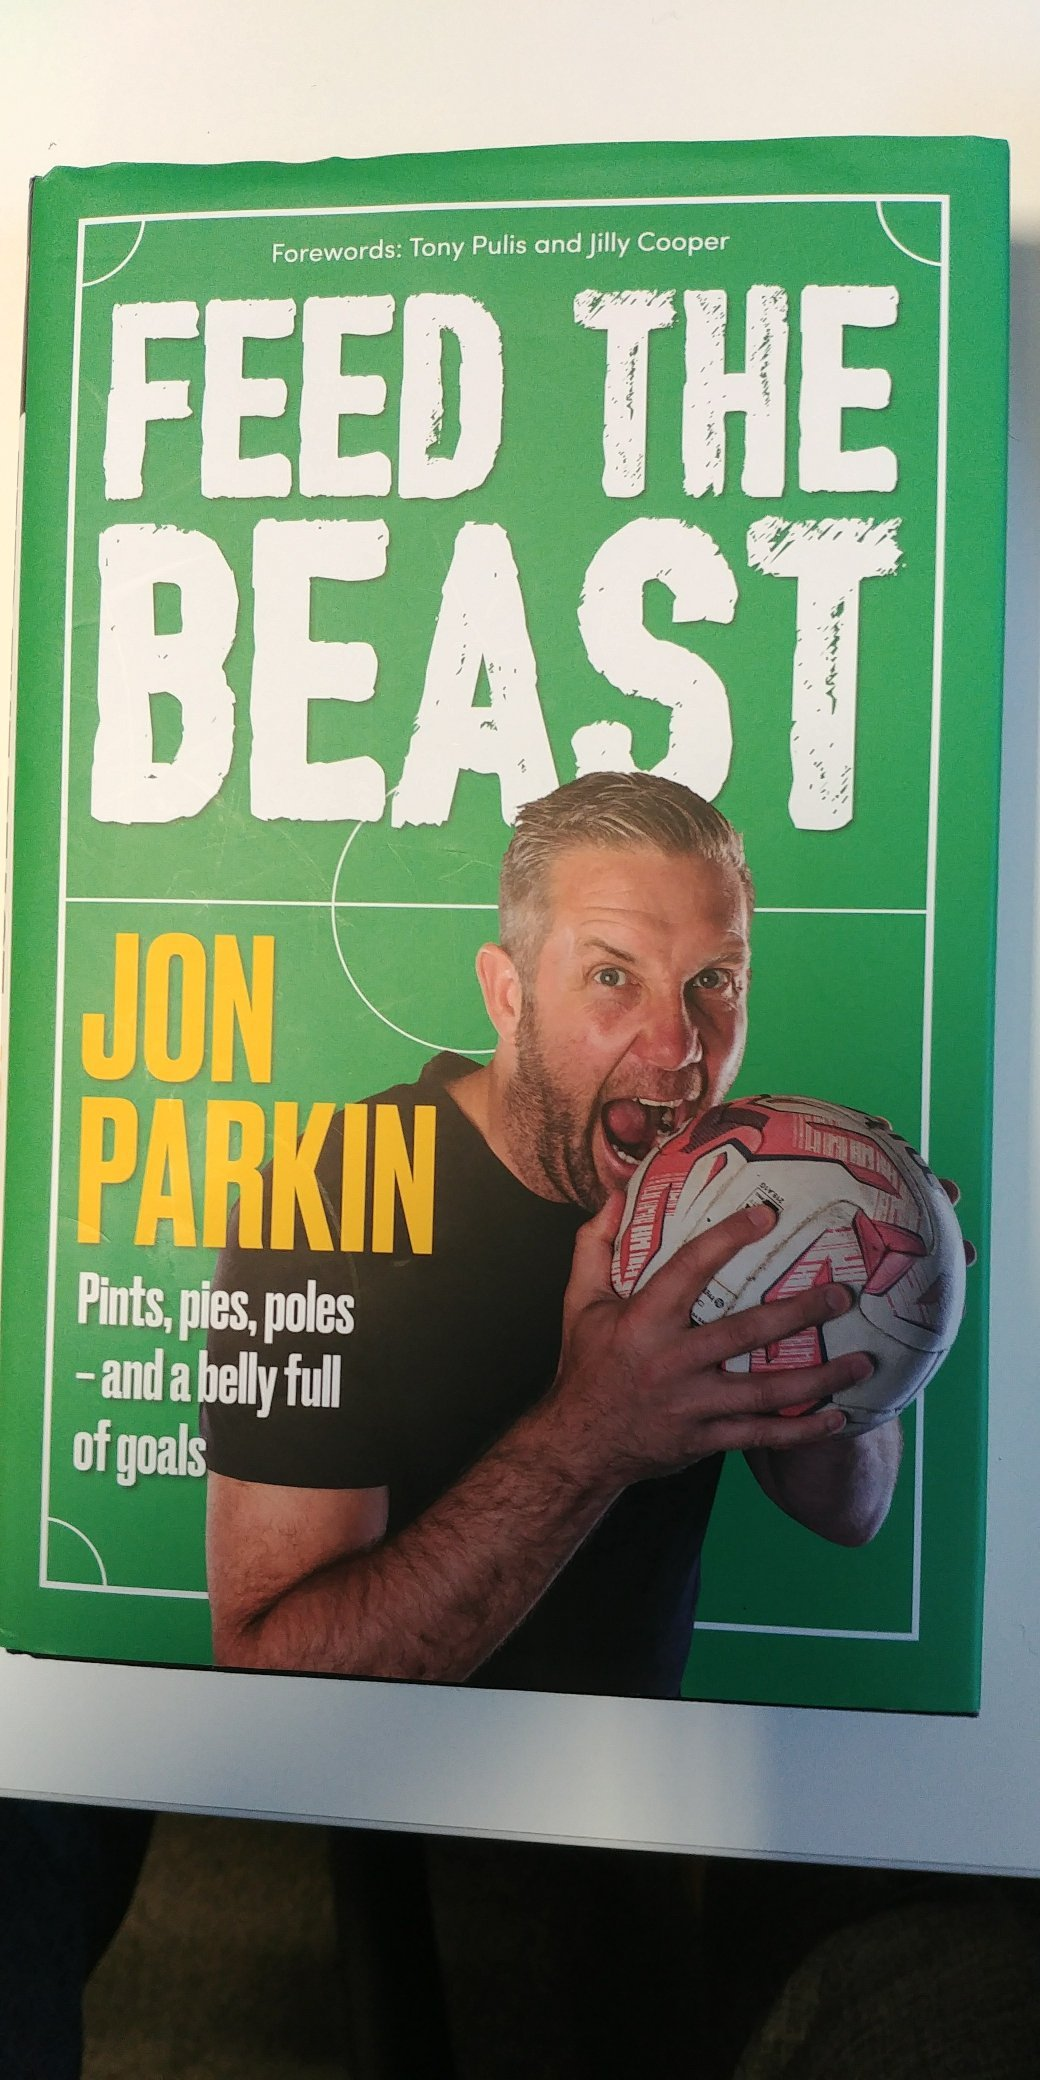 SINK YOUR TEETH INTO THIS: York City striker Jon Parkin's new book is attracting five-star reviews on Amazon and offers an honest and revealing insight into the life of a footballer with few punches pulled and plenty of laughs along the way